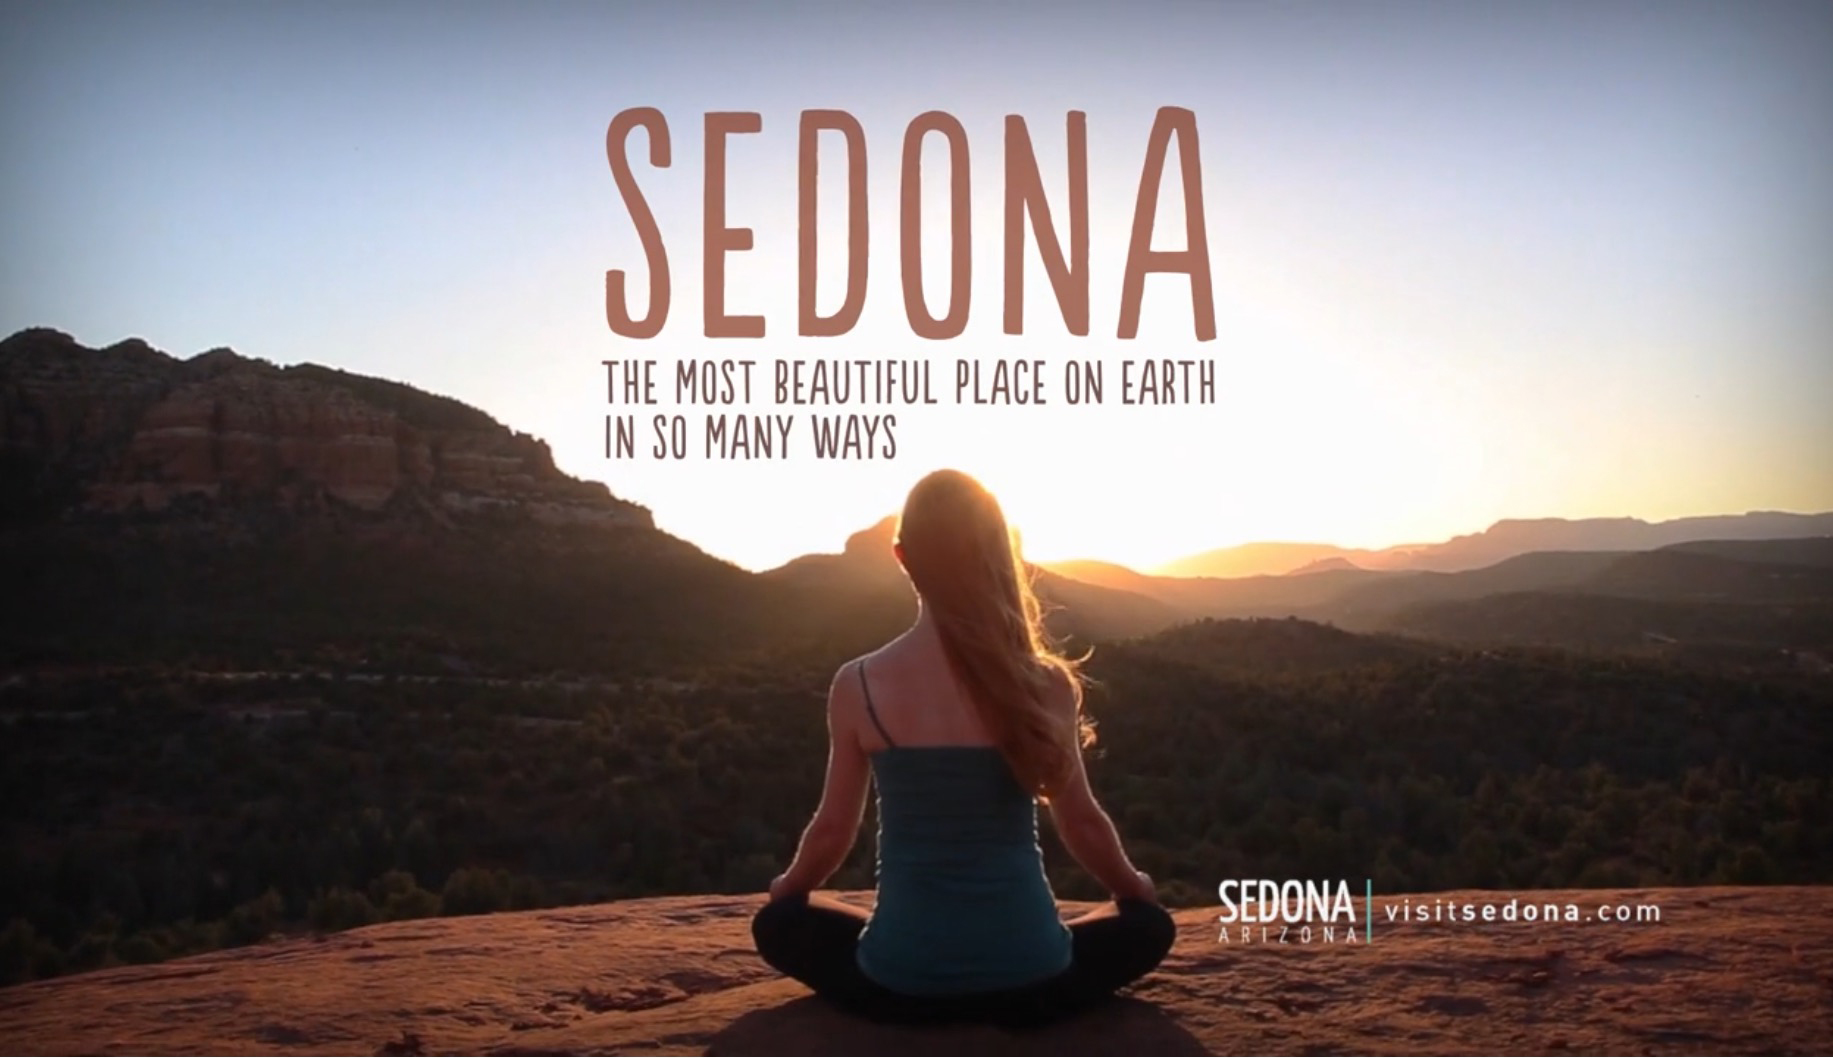 Advertising Campaign for Sedona Chamber of Commerce and Tourism